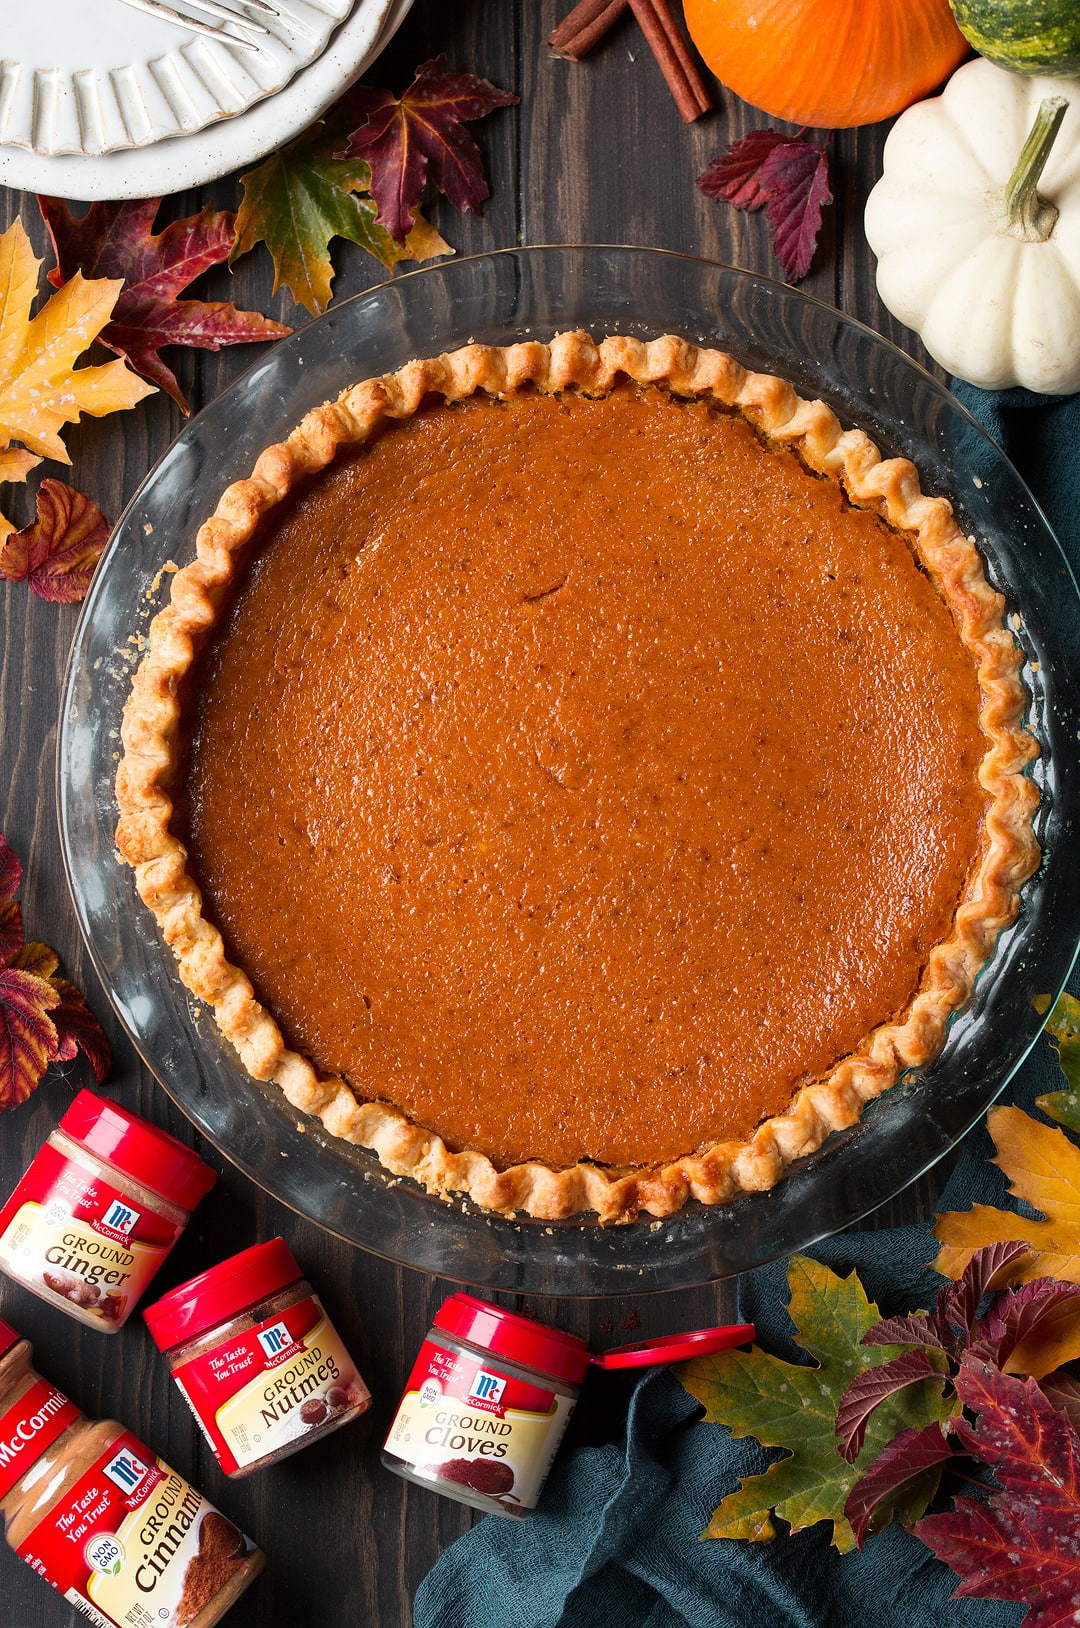 Pumpkin Pie shown here in a glass baking dish